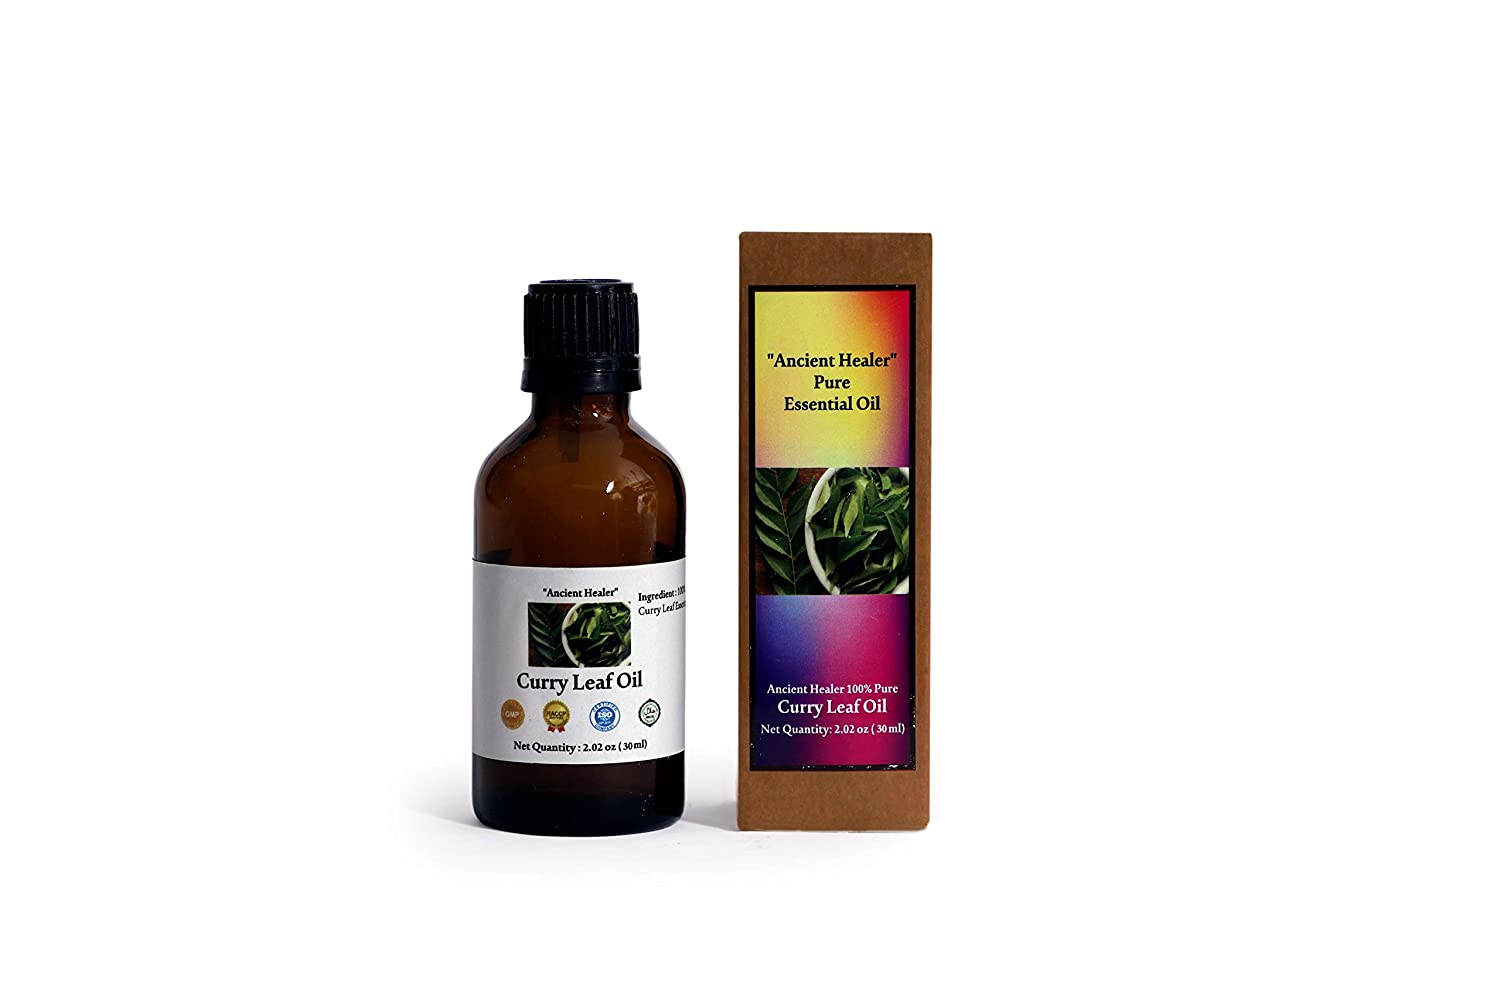 Ancient Healer 100% Natural Curry Leaf Essential Oil 30 ML